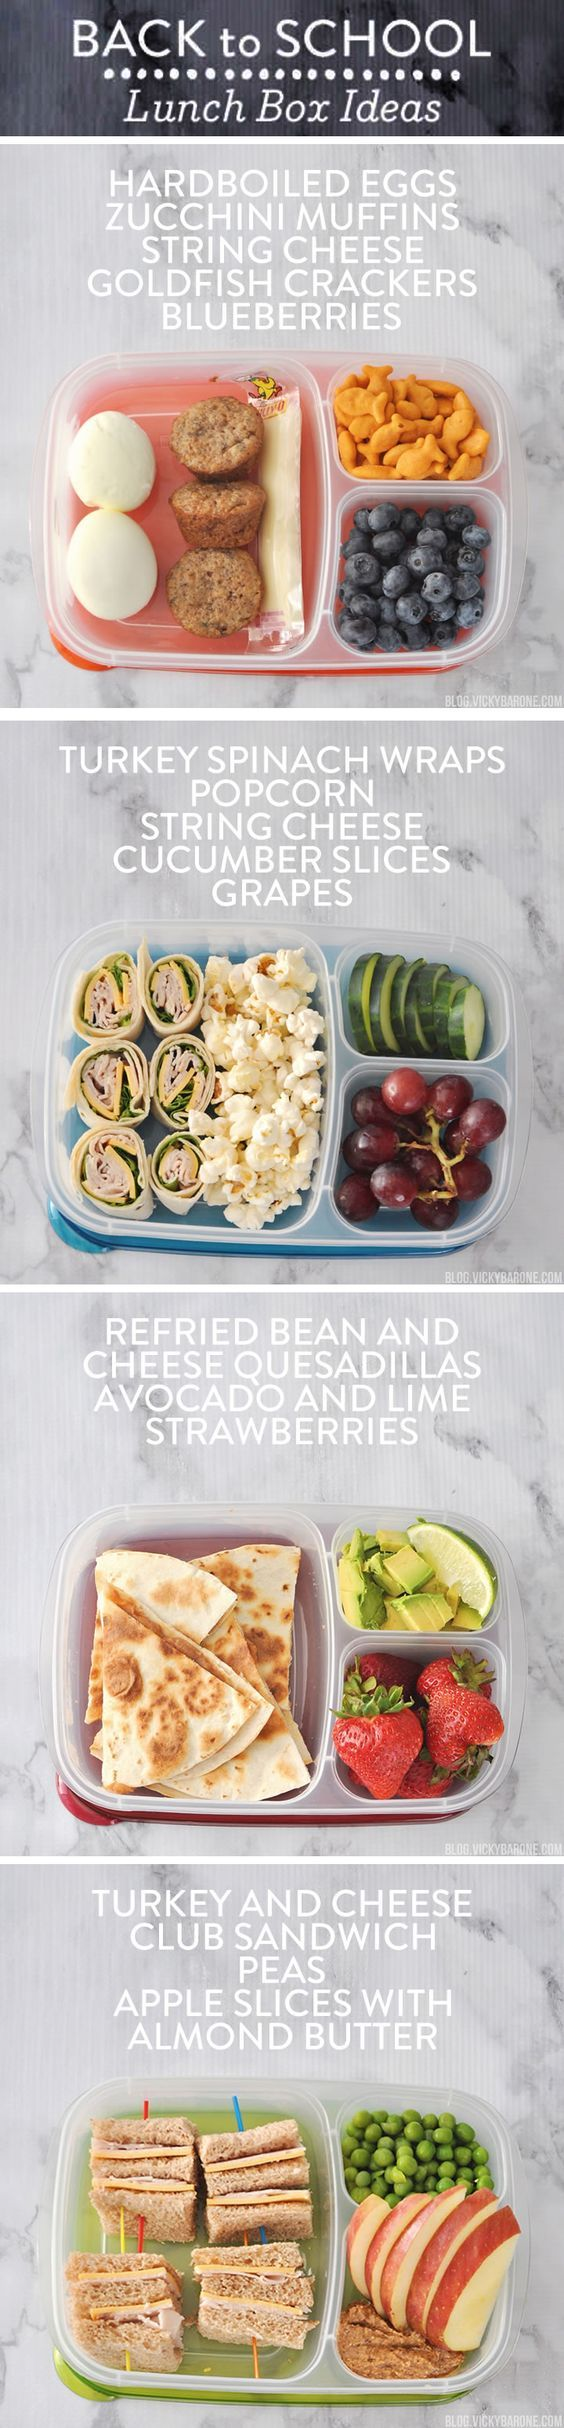 The school year hasn't even started yet, and we bet you're already running out of ideas for lunches. Get inspired with these ideas!